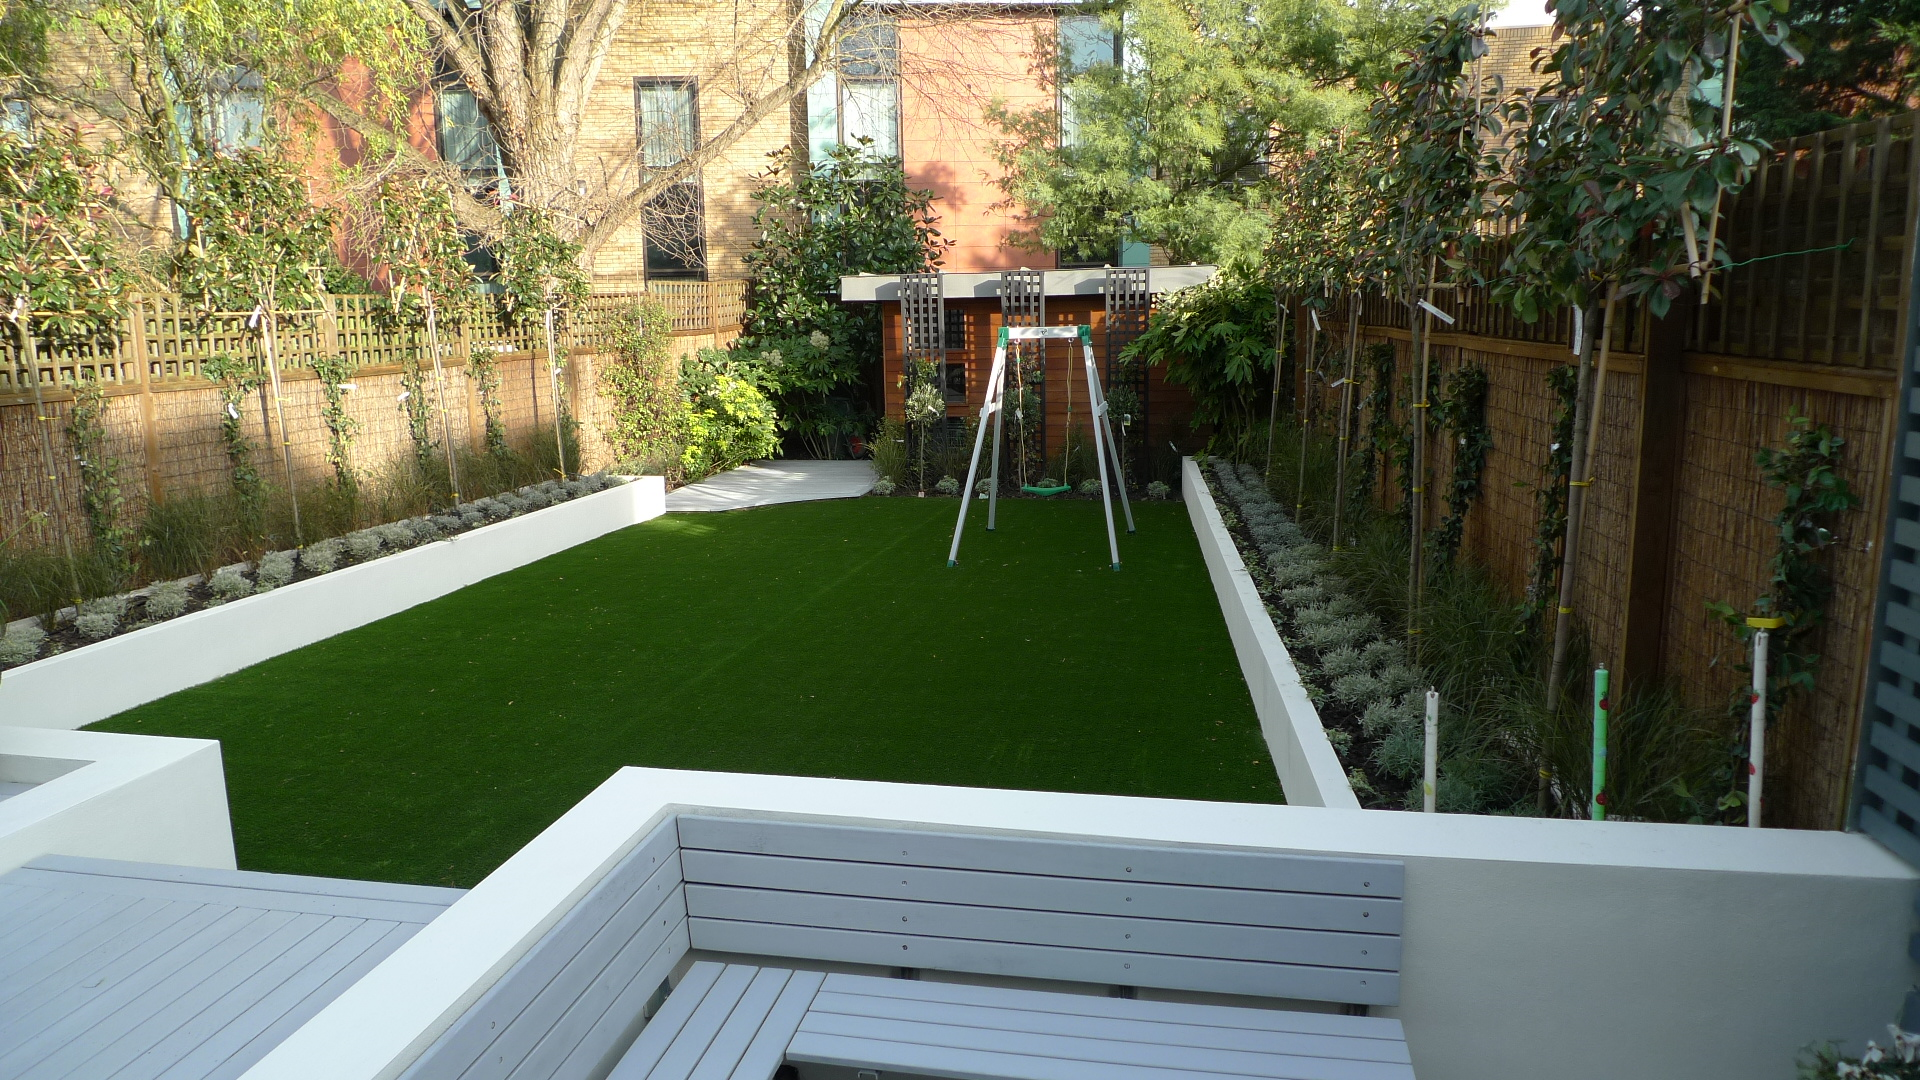 Modern garden design ideas london london garden design for Back house garden design